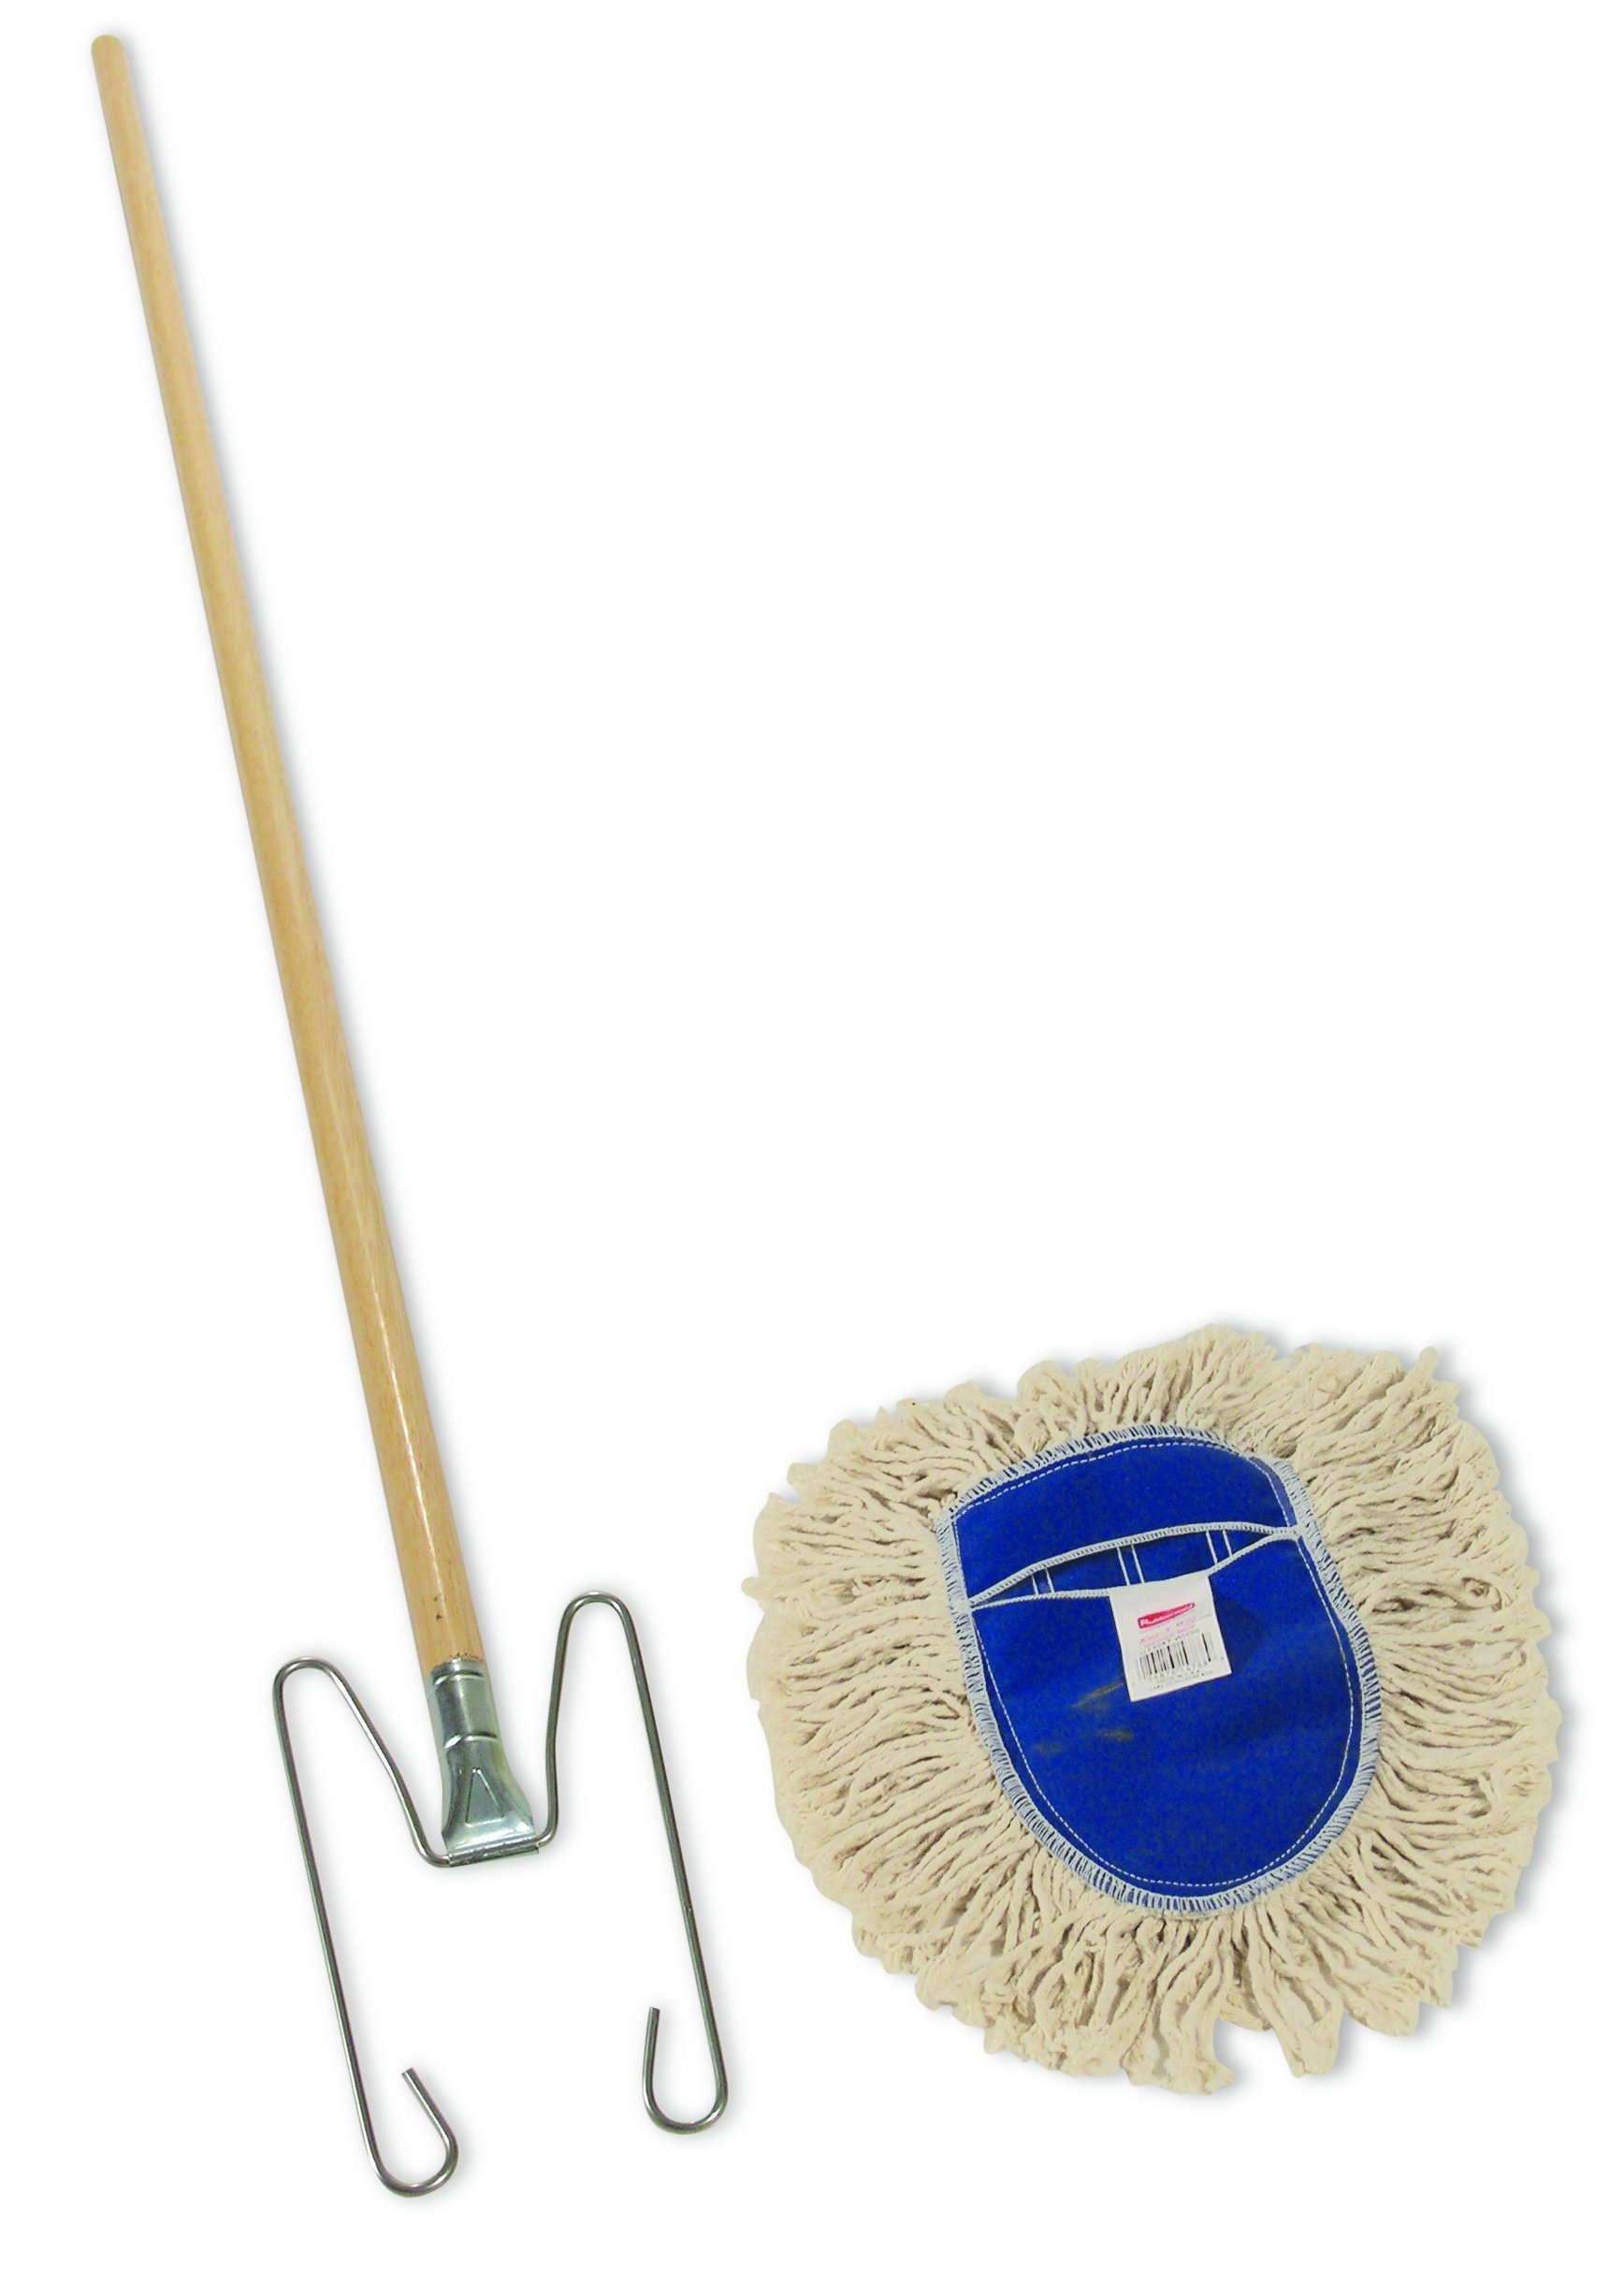 Rubbermaid Commercial FGU13067WH00 3-Piece Kut-A-Way Wedge Mop Kit, White by Rubbermaid Commercial Products